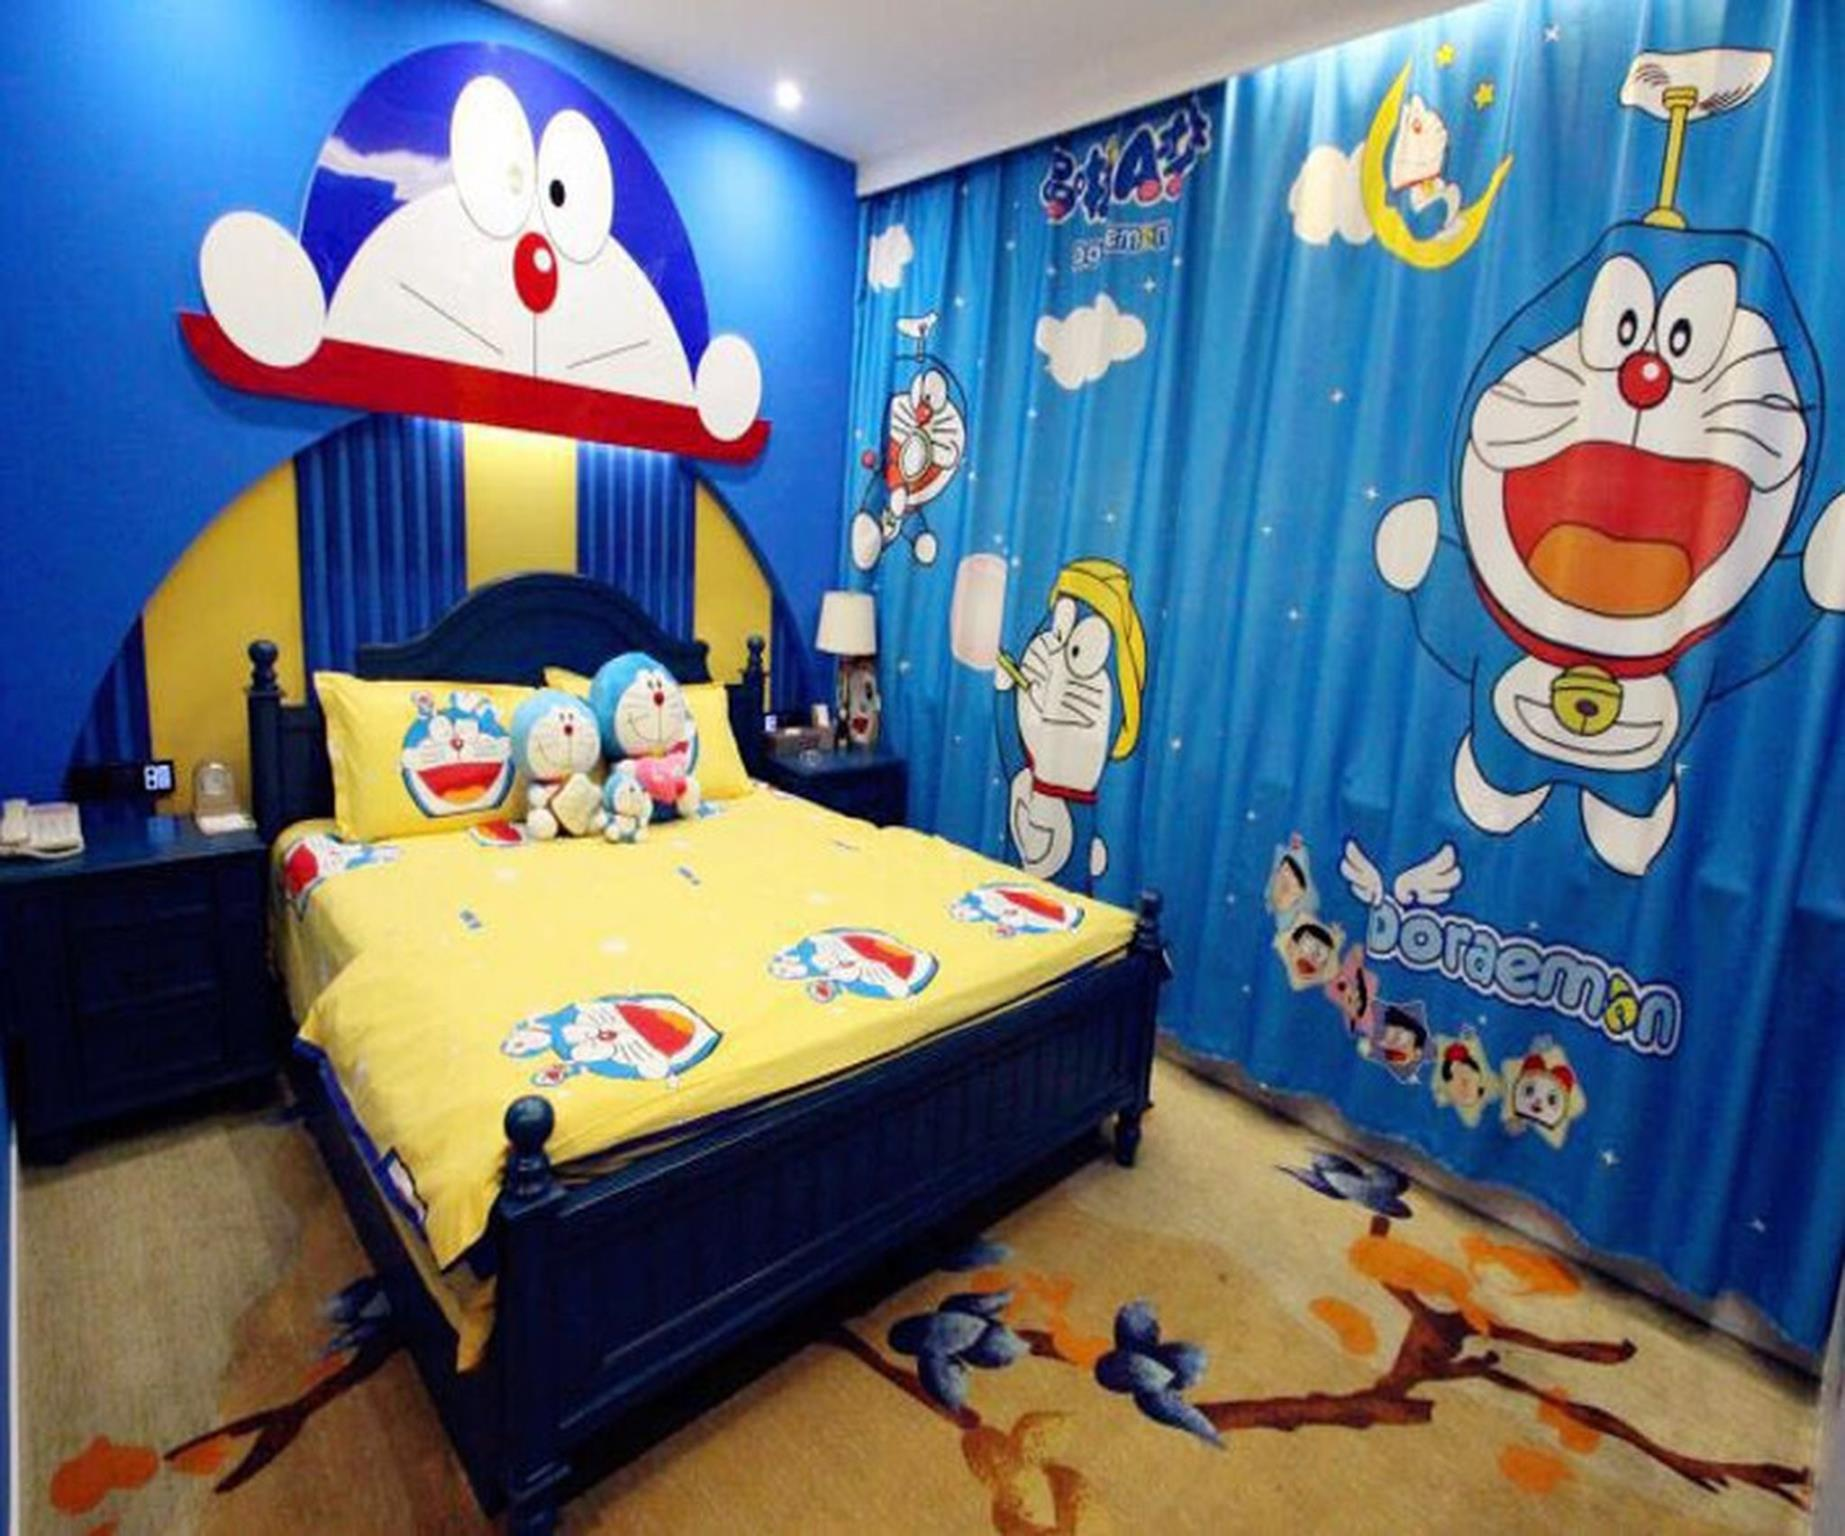 Kid's Pleasure Room Type B